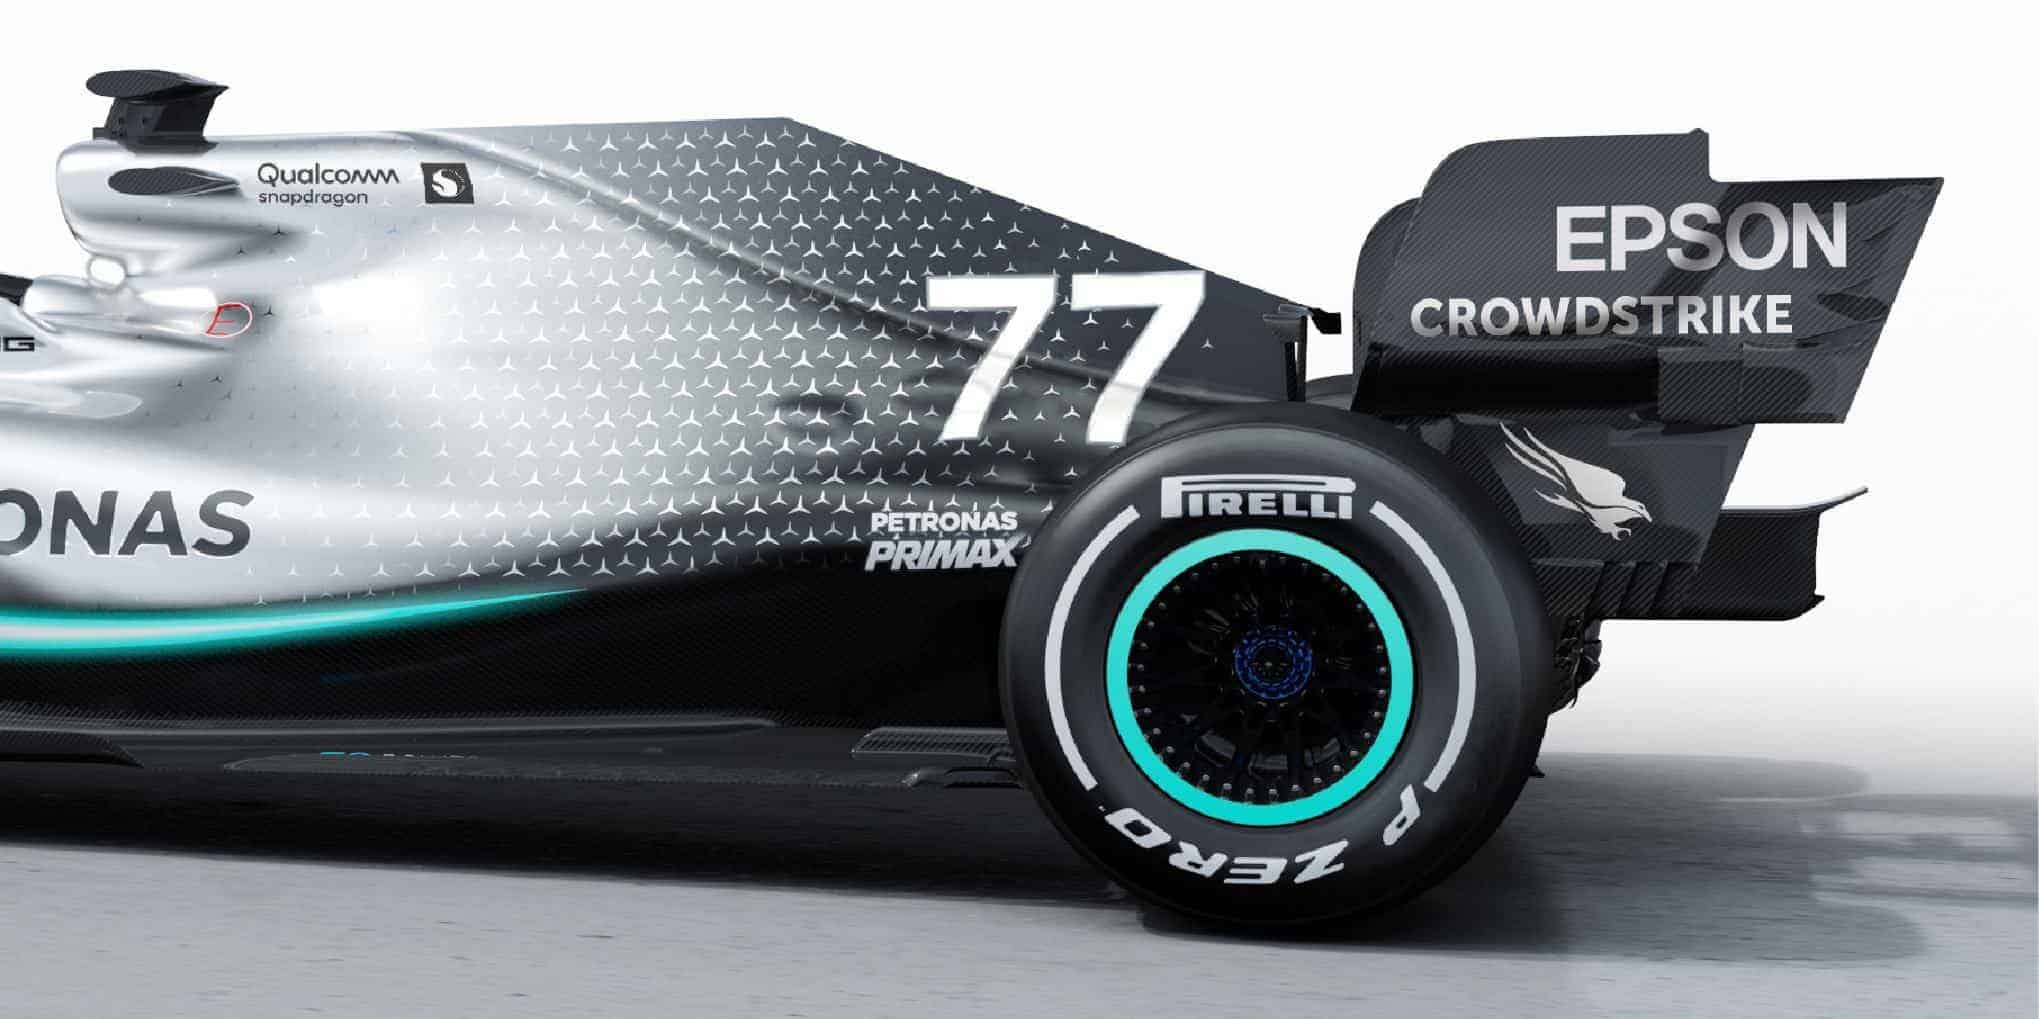 2019 F1 tech Mercedes F1 W10 EQ Power + rear end engine cover rear floor wing side Photo Daimler Edited by MAXF1net